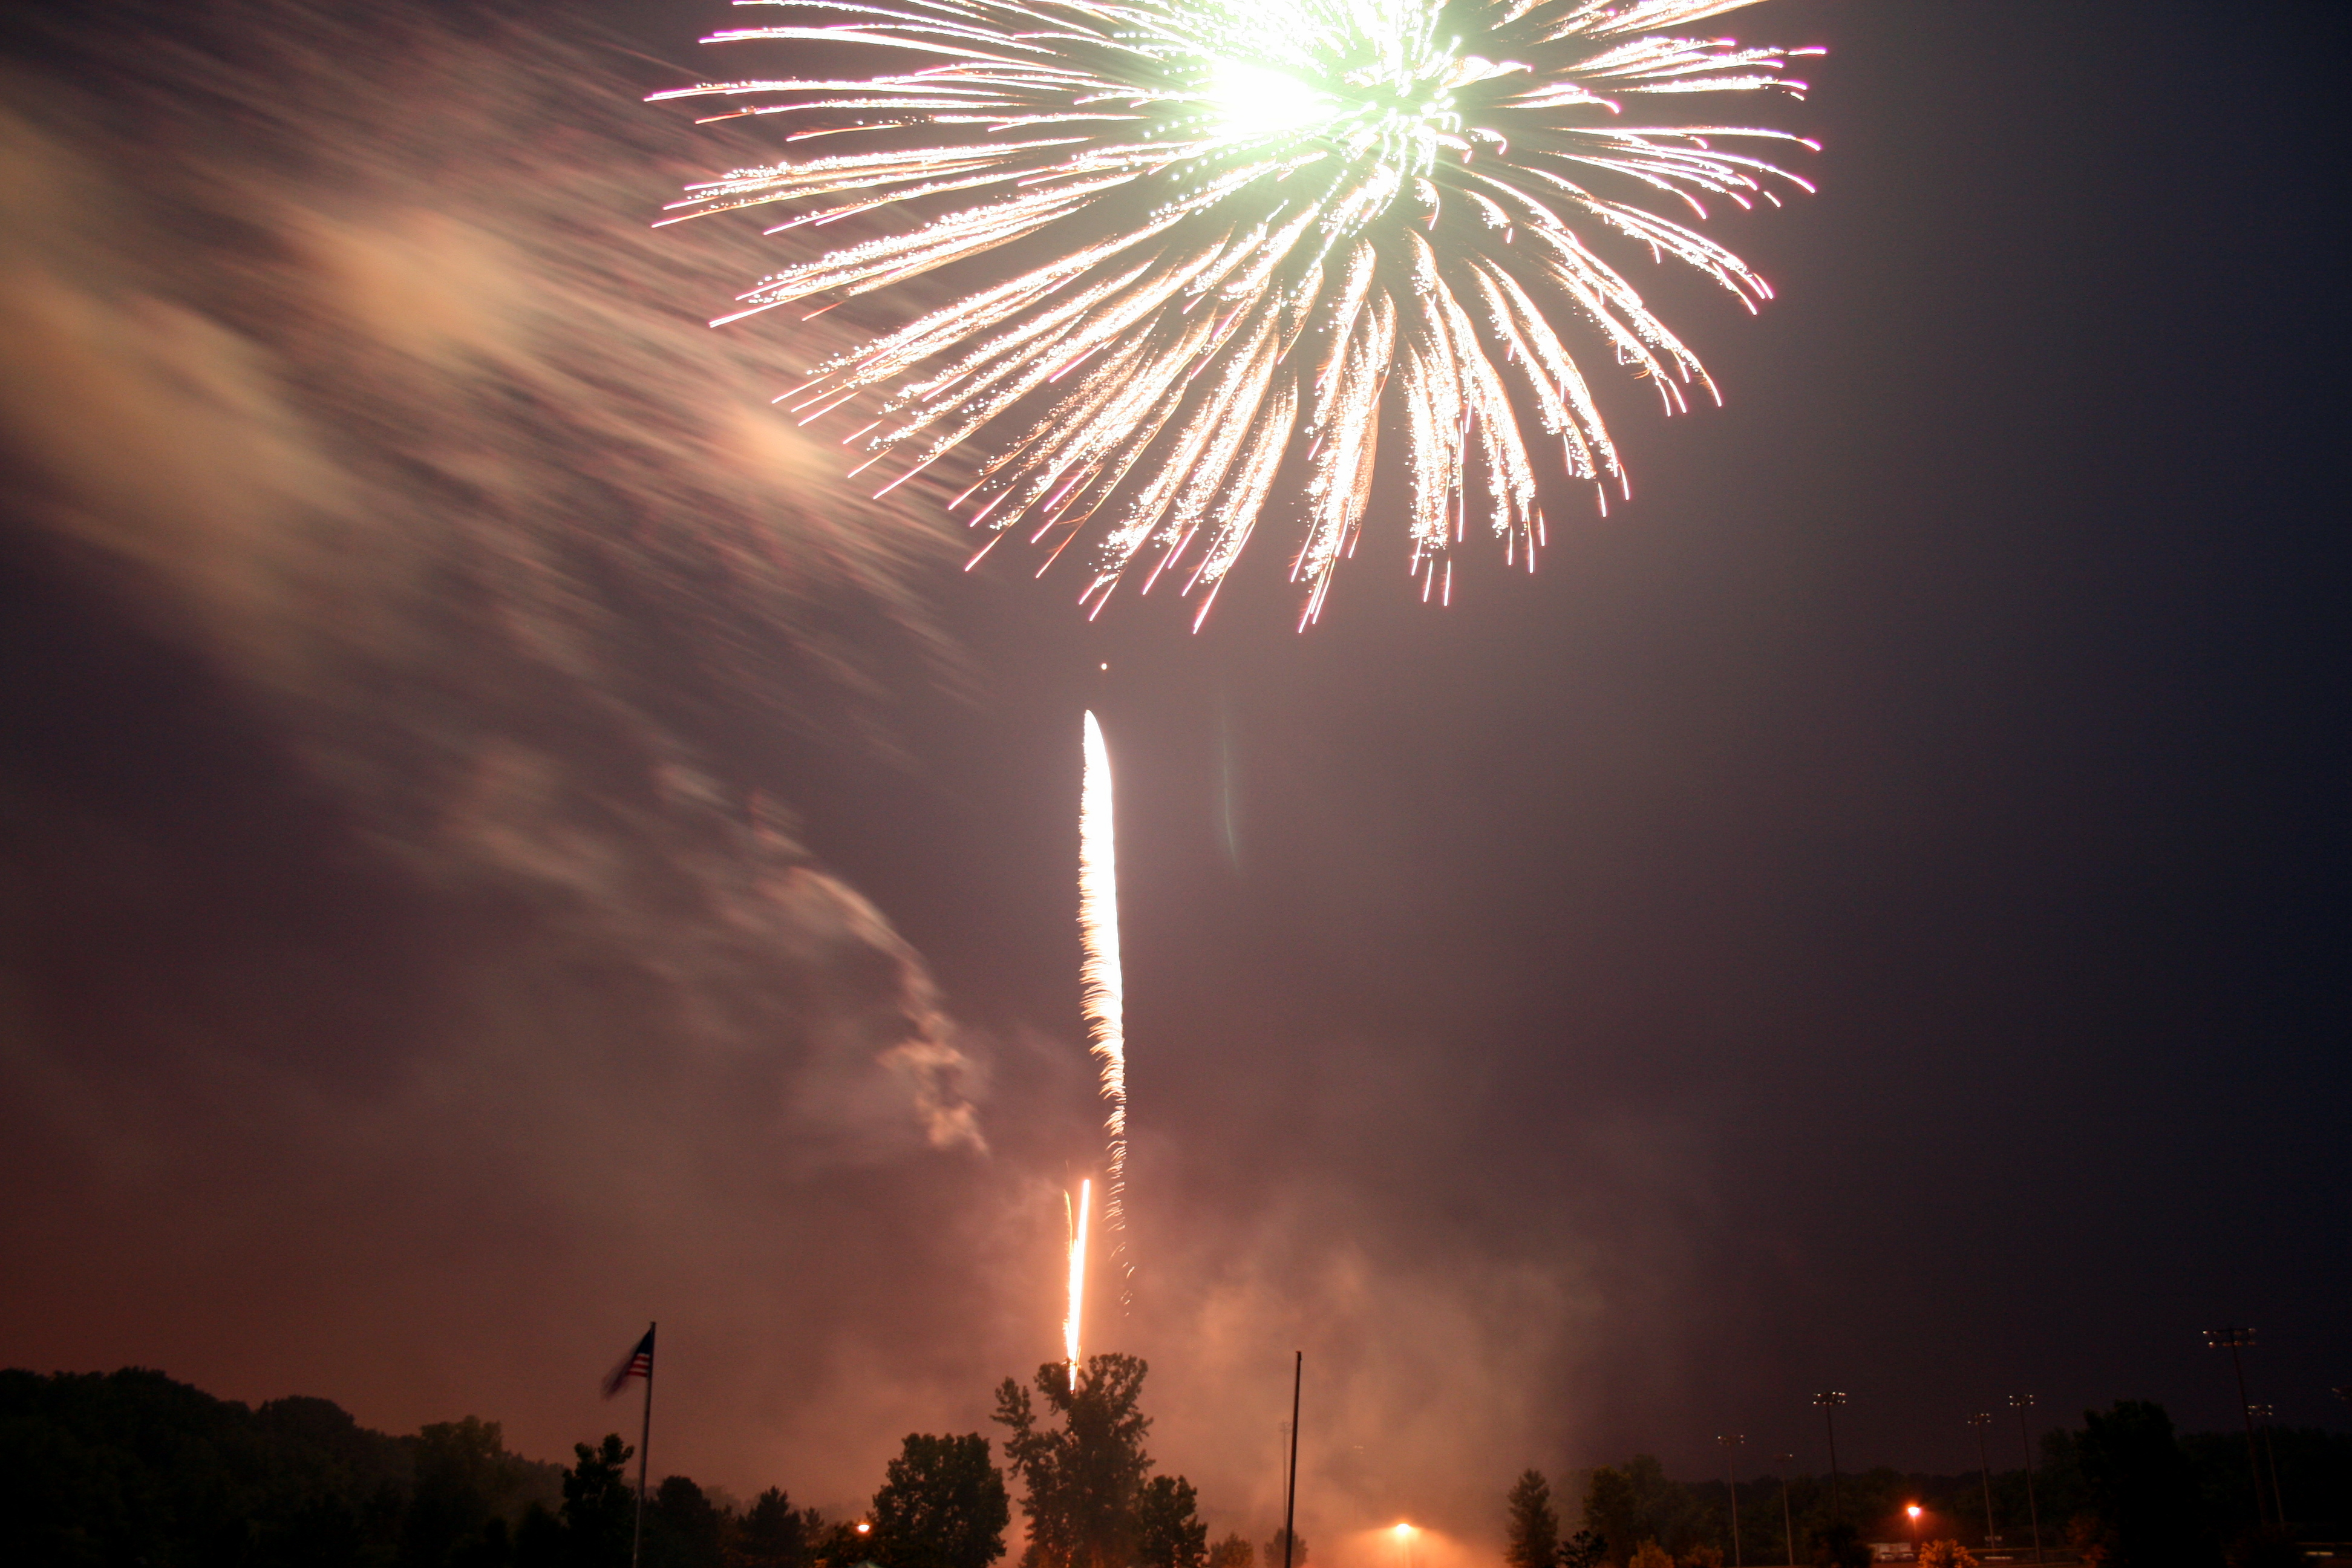 Fireworks III by dhunley